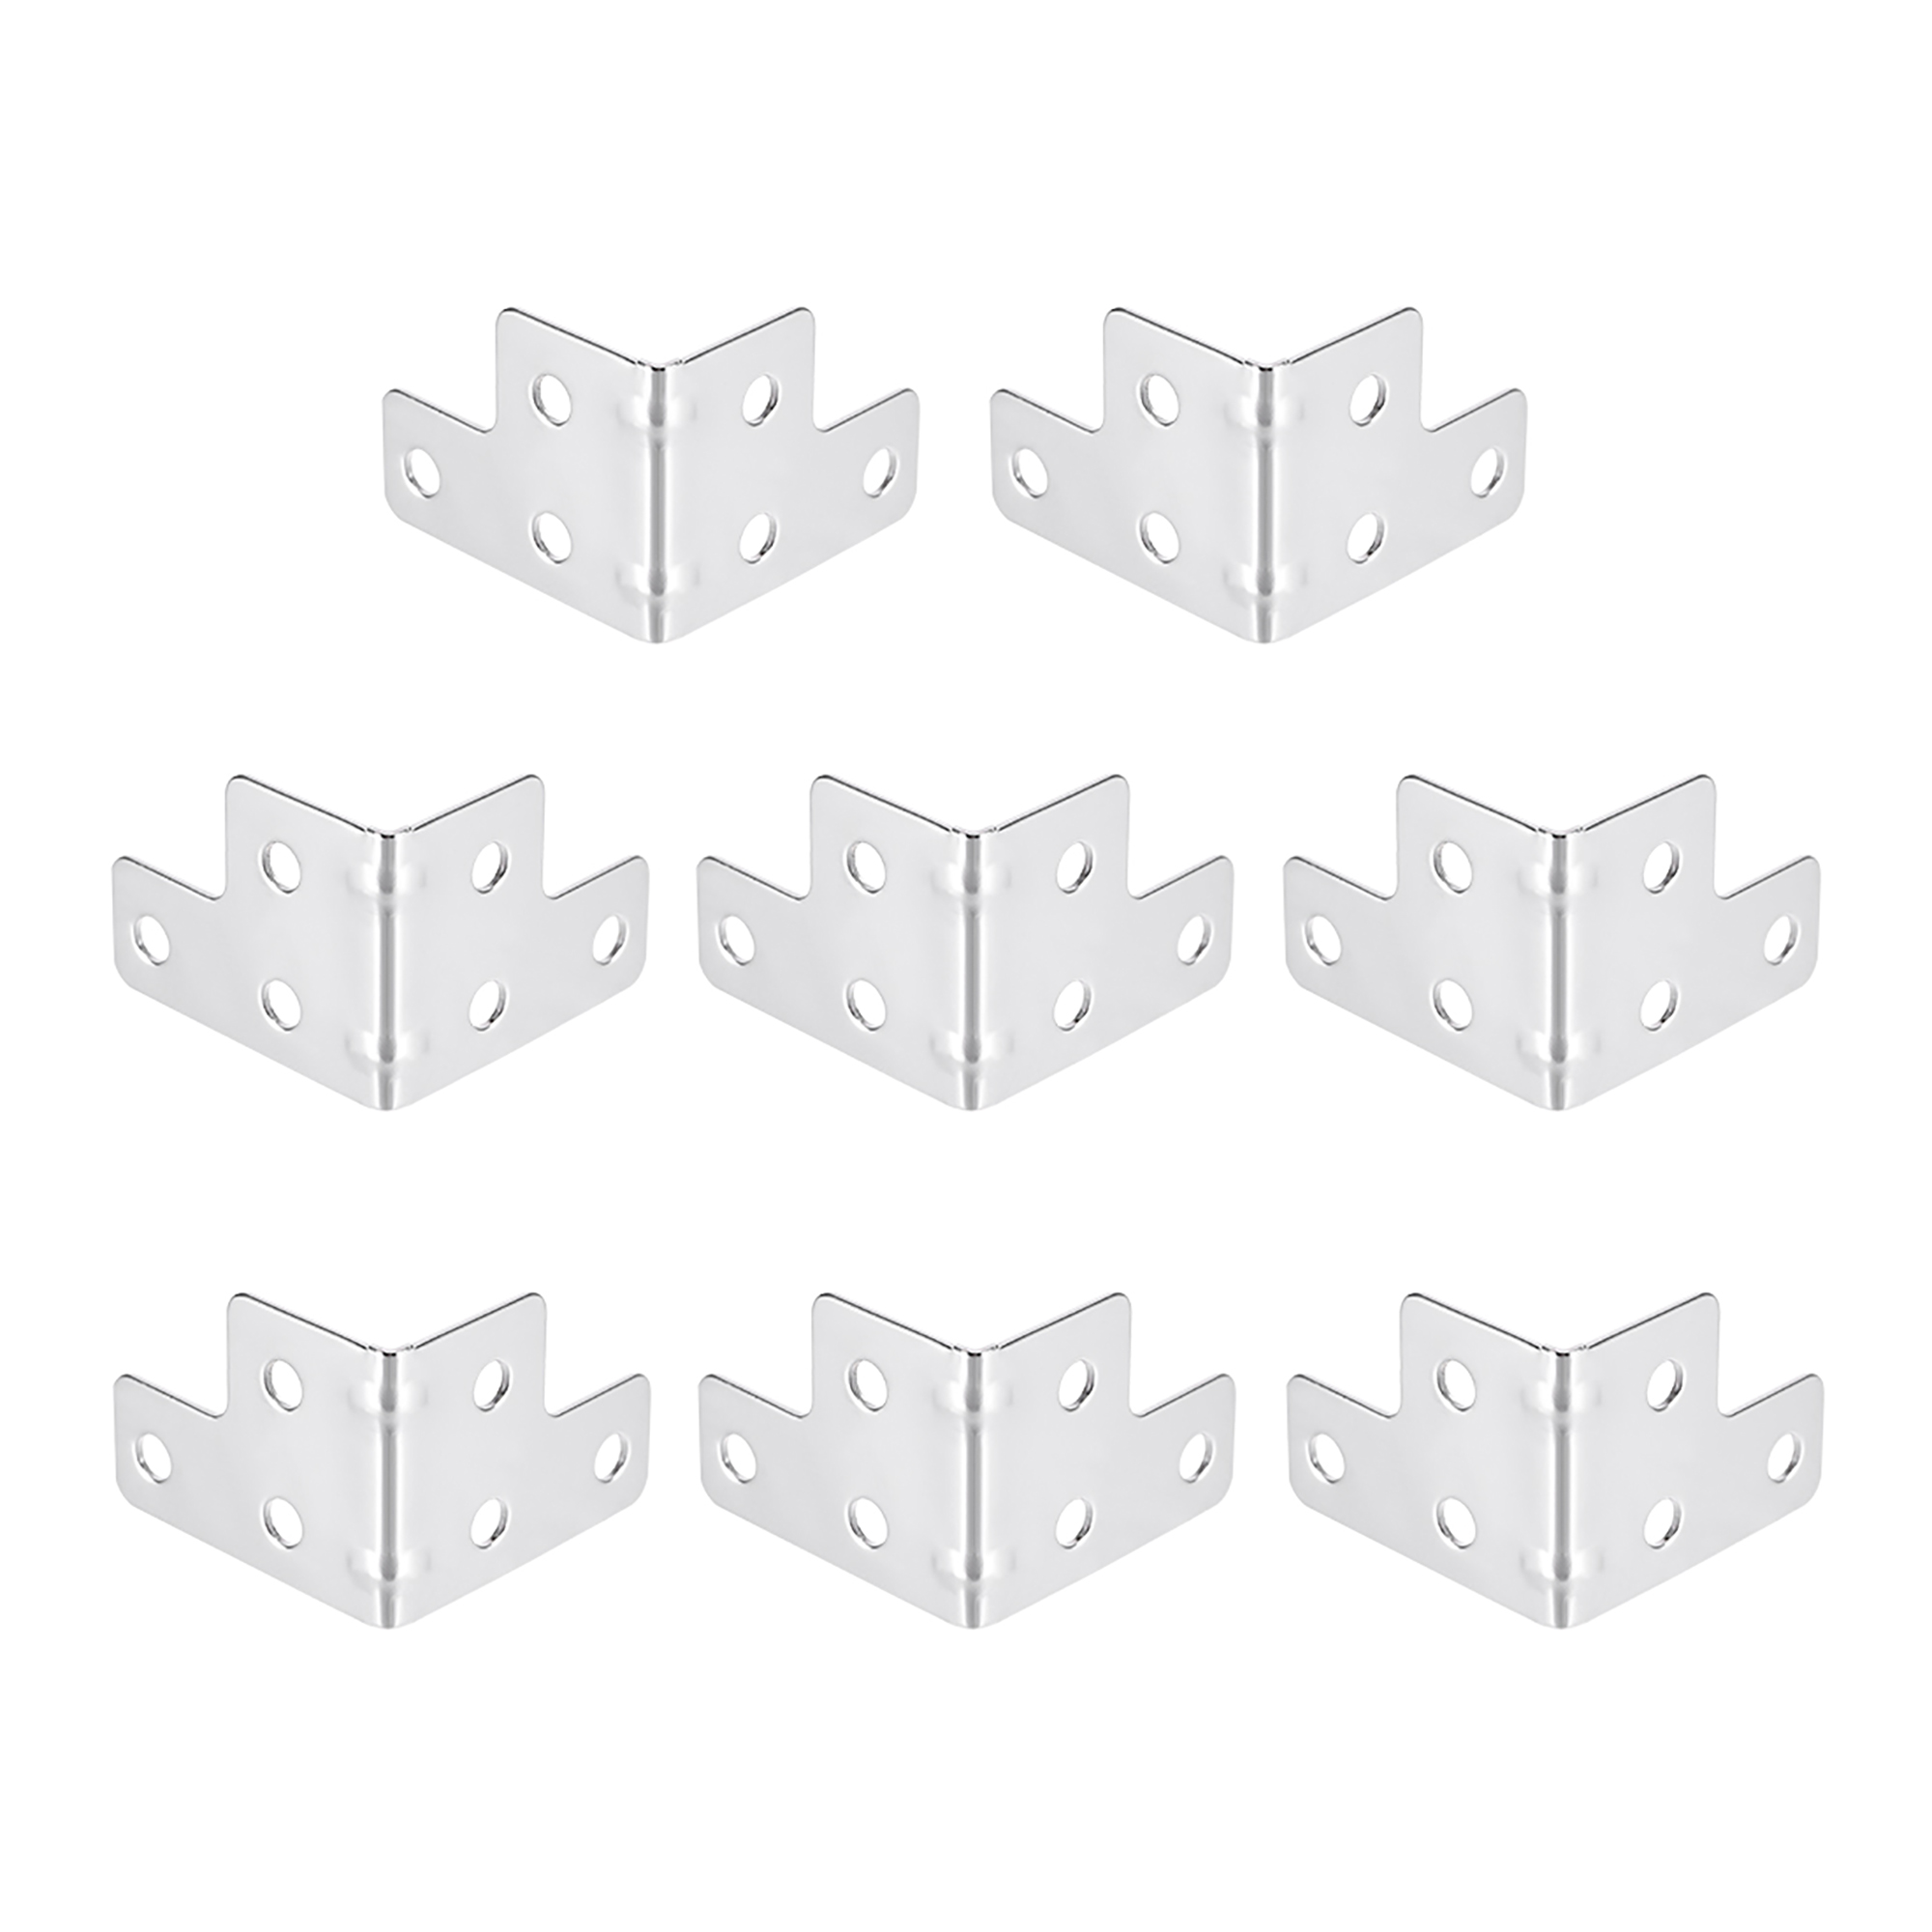 Trunks 32mm Plain Metal Corners For Storage Boxes Tuck Boxes Cases Set of 8